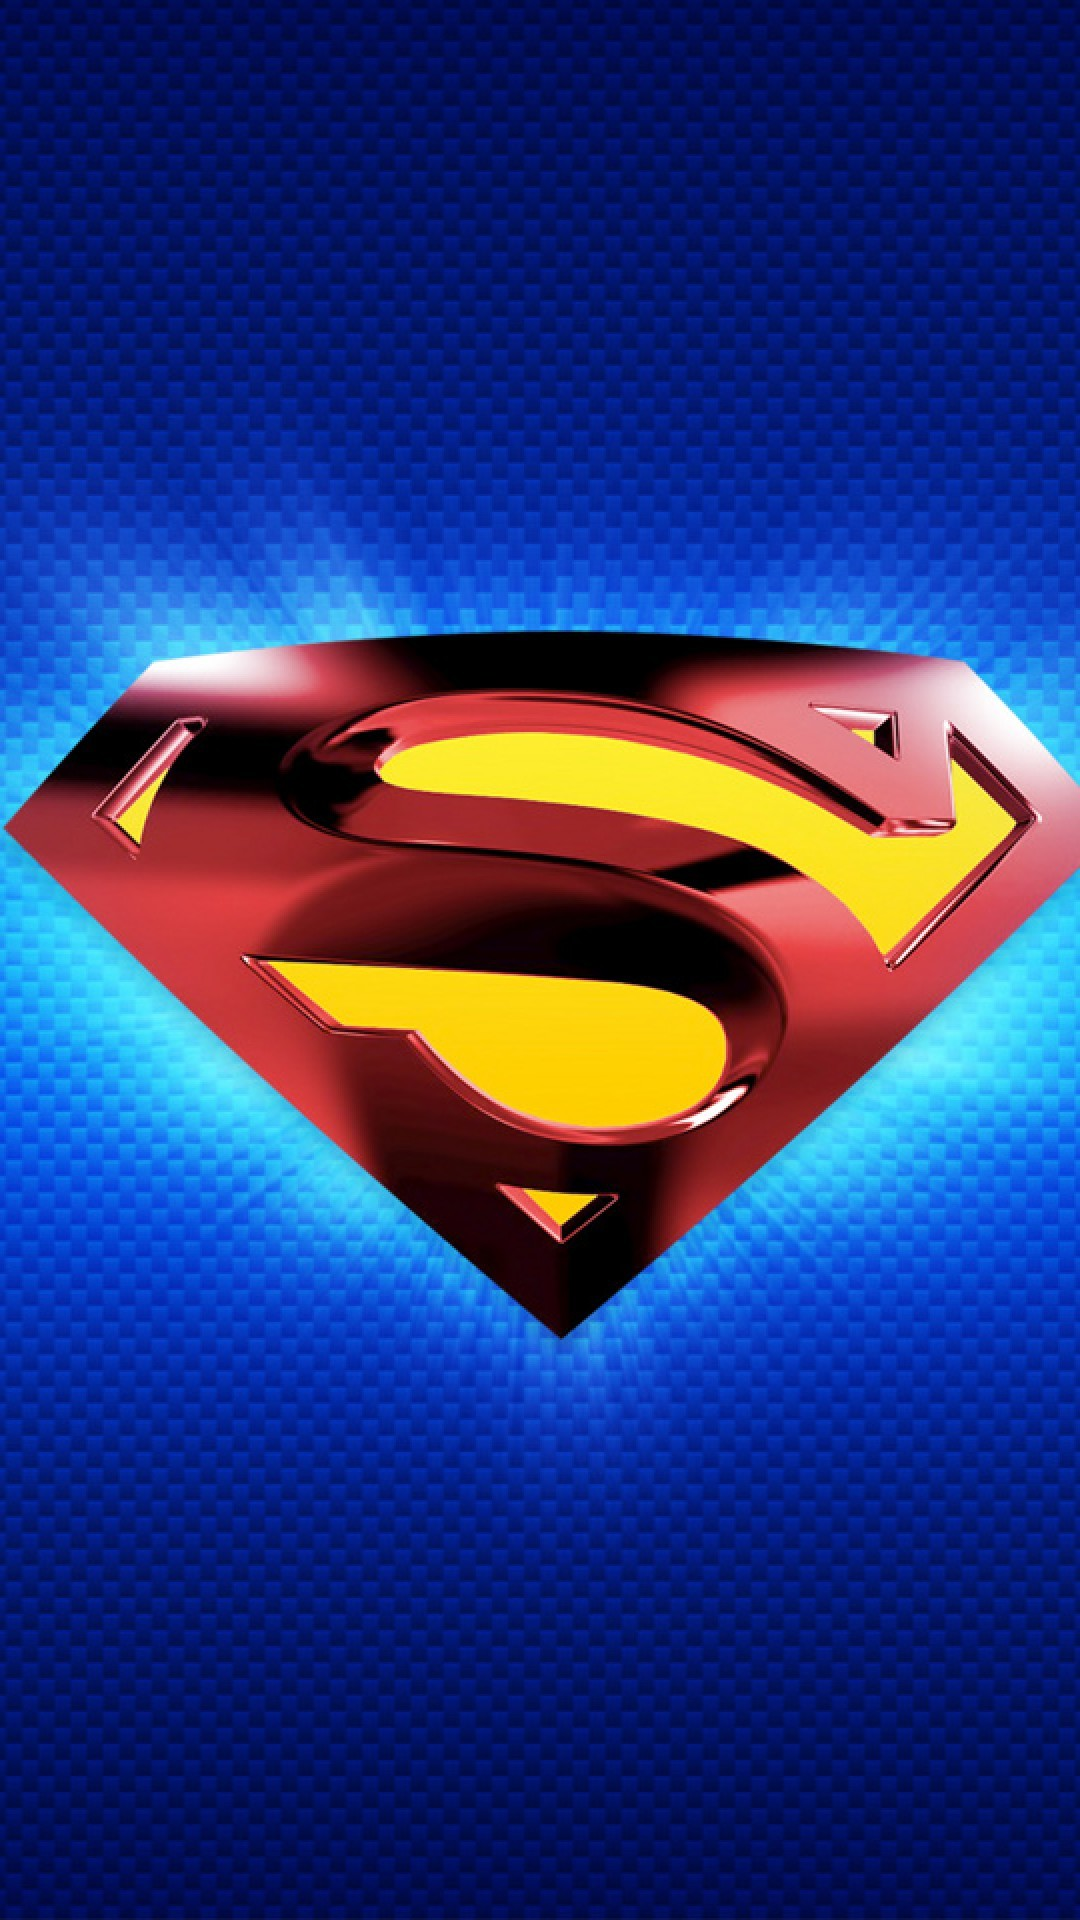 Superman IPhone Wallpaper HD 71 Images